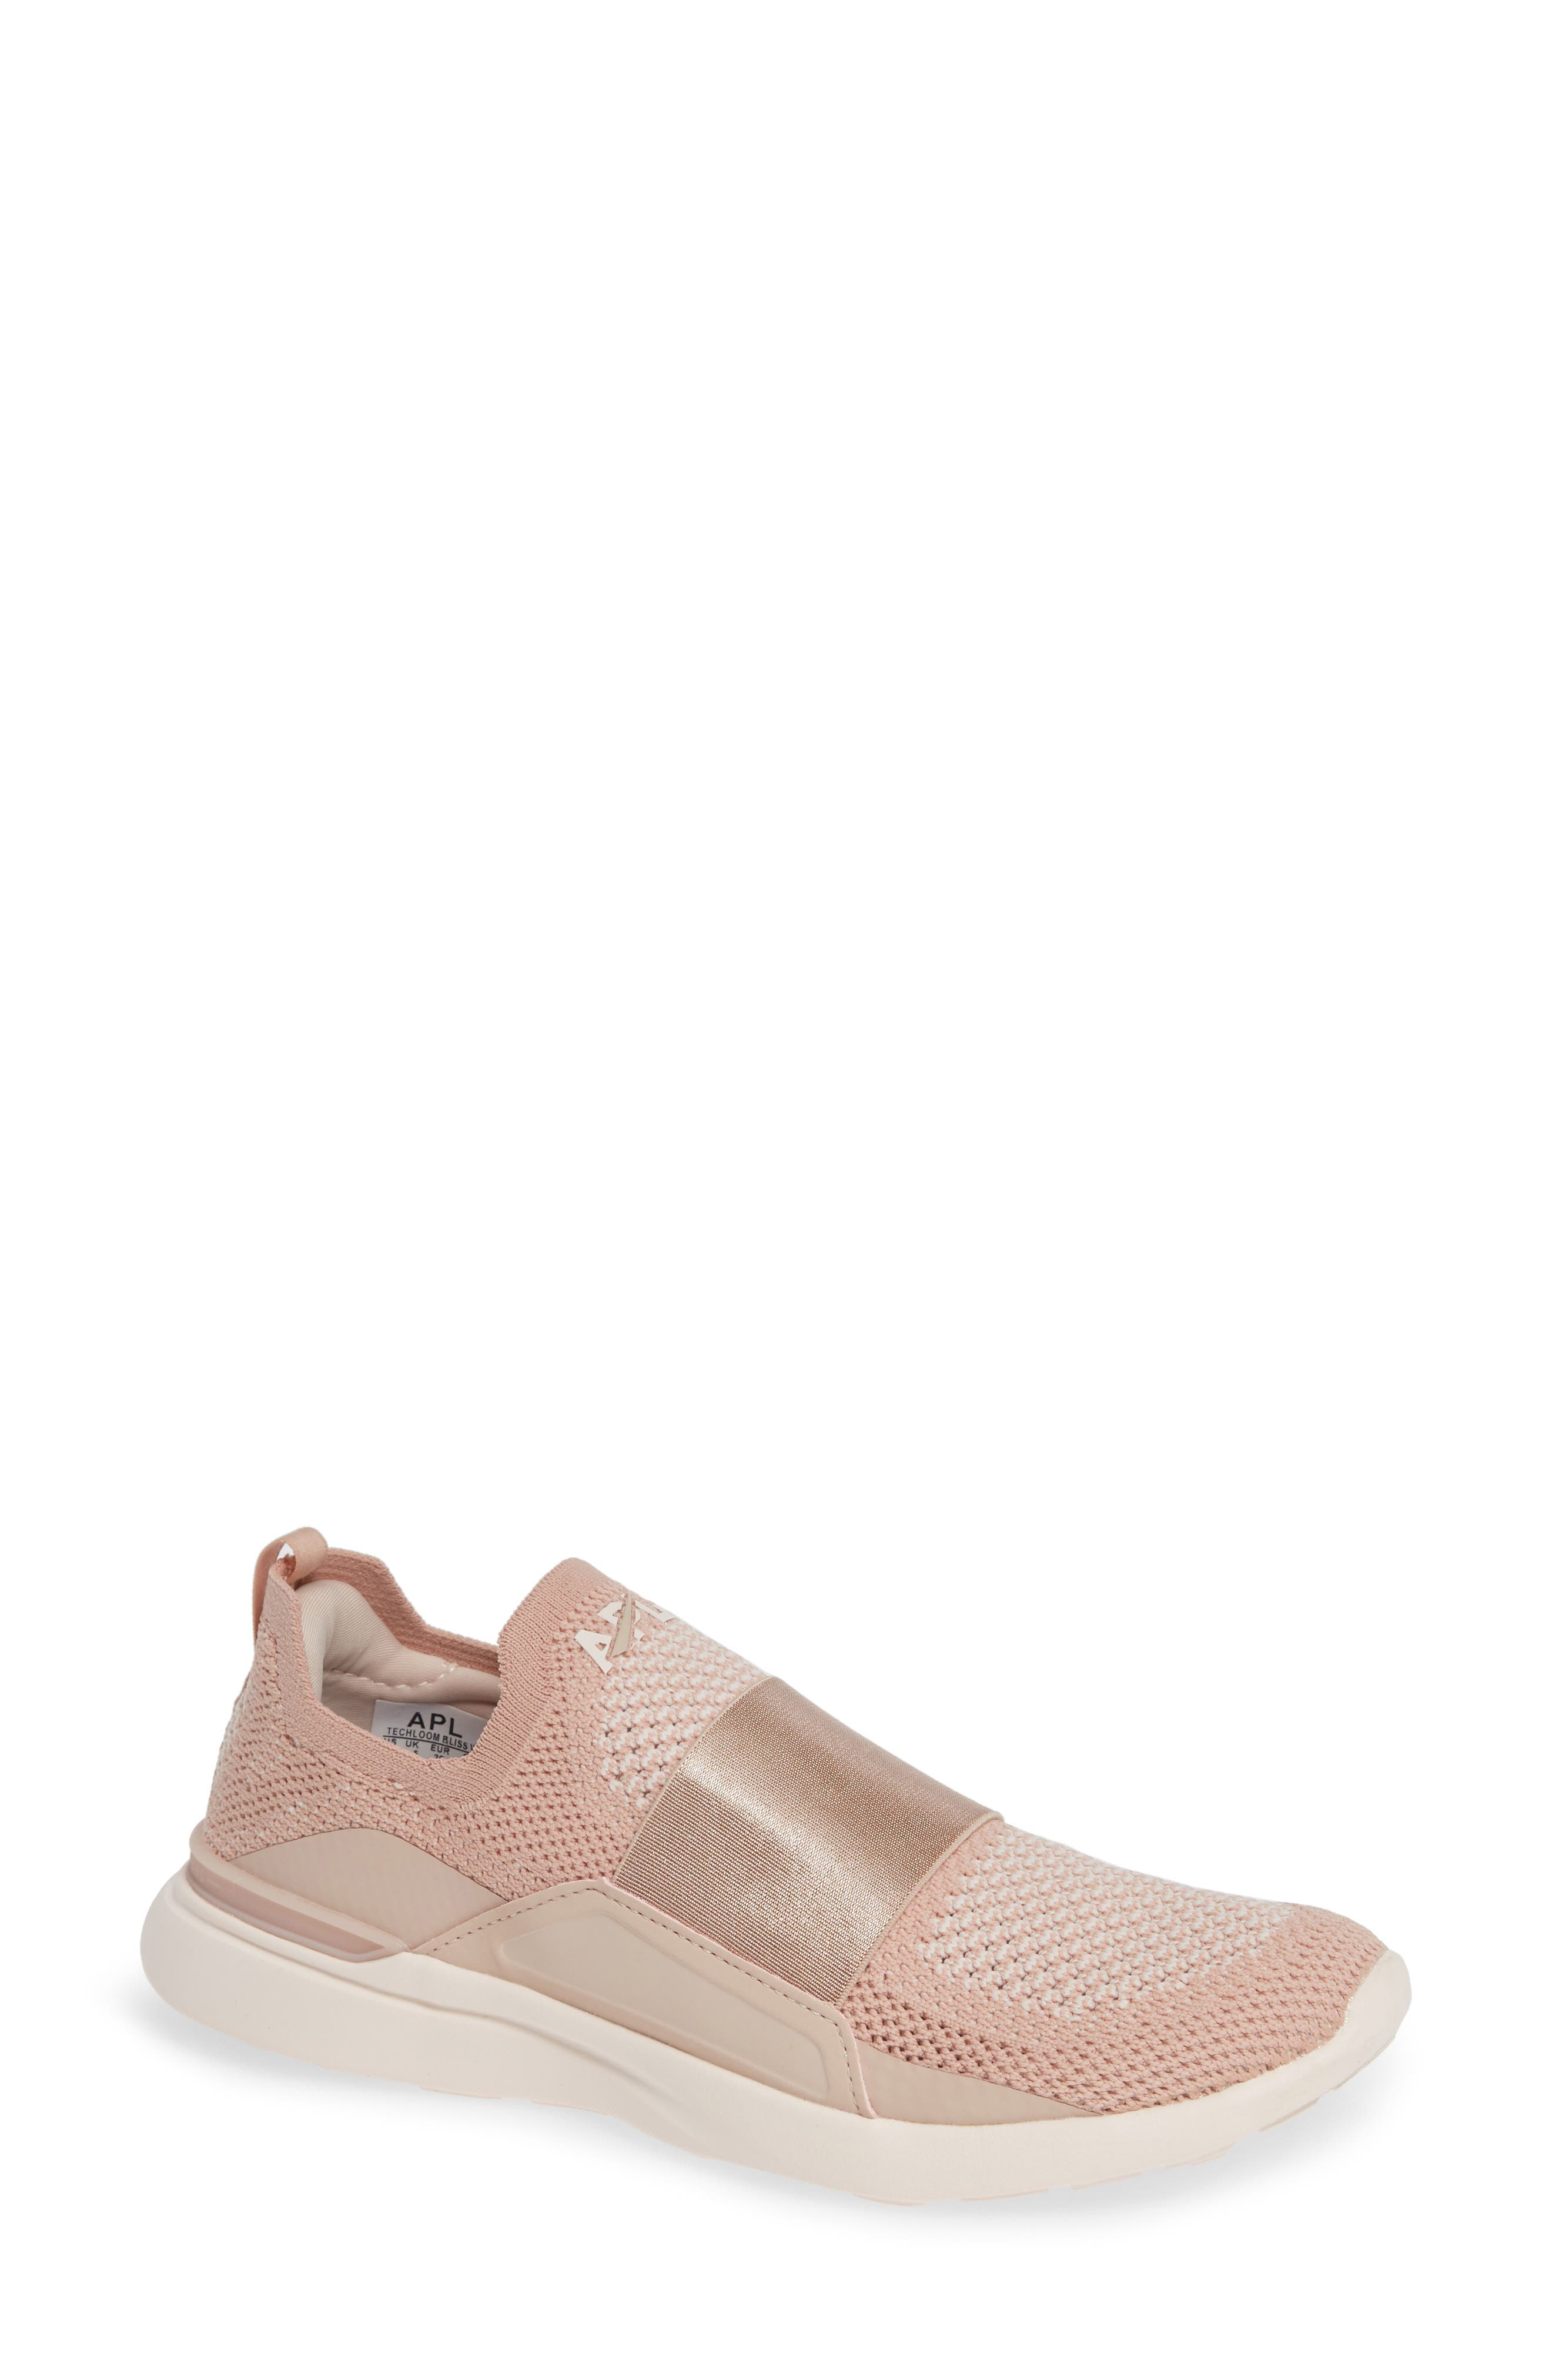 APL ATHLETIC PROPULSION LABS Techloom Bliss Mesh And Neoprene Sneakers in Blush